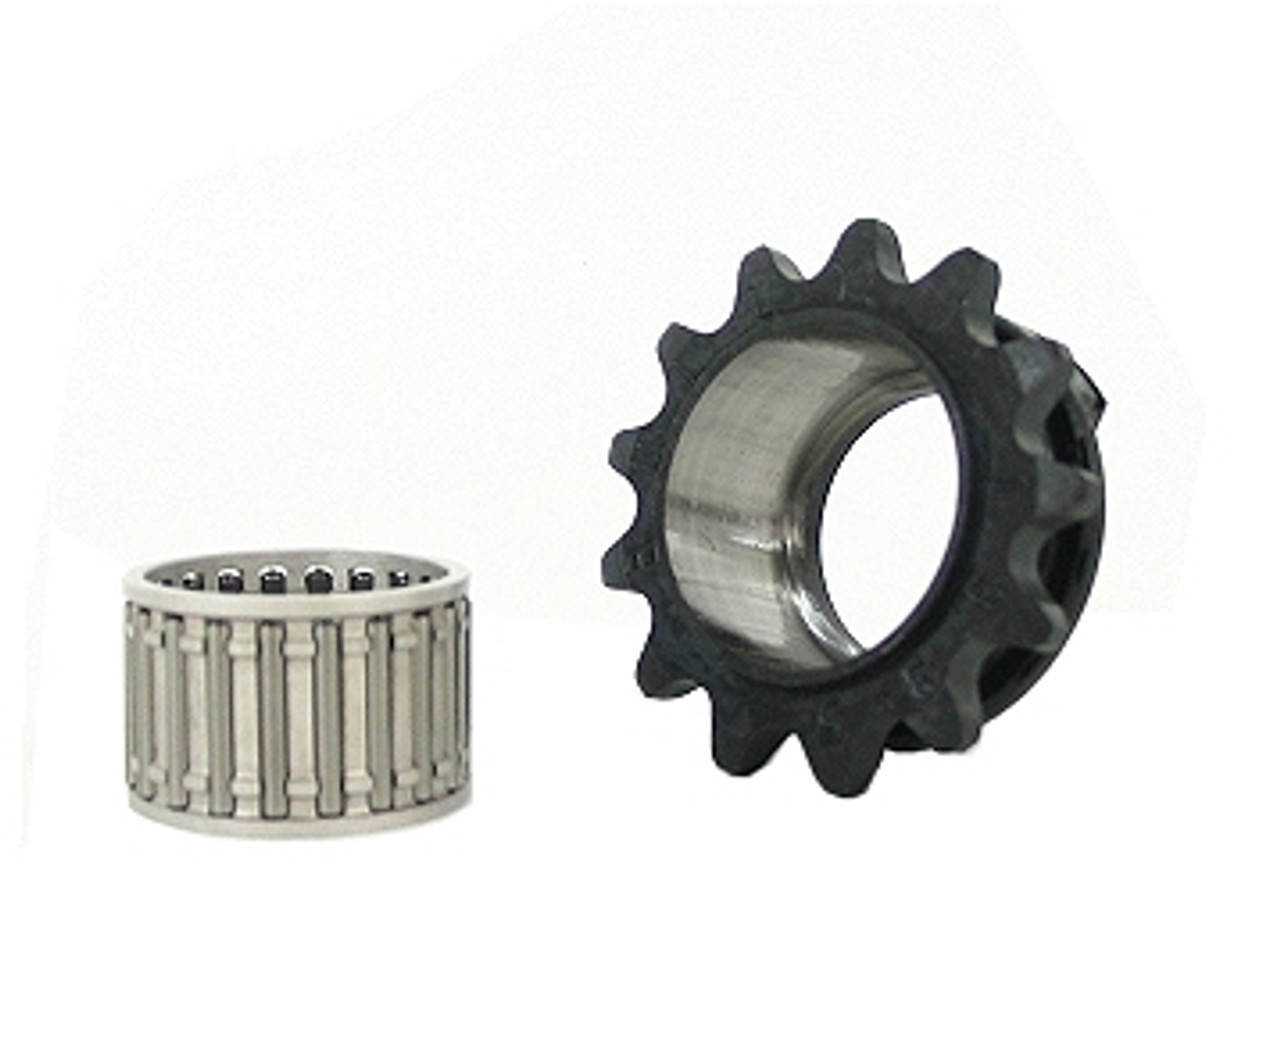 Bully Clutch Driver with removable bearing